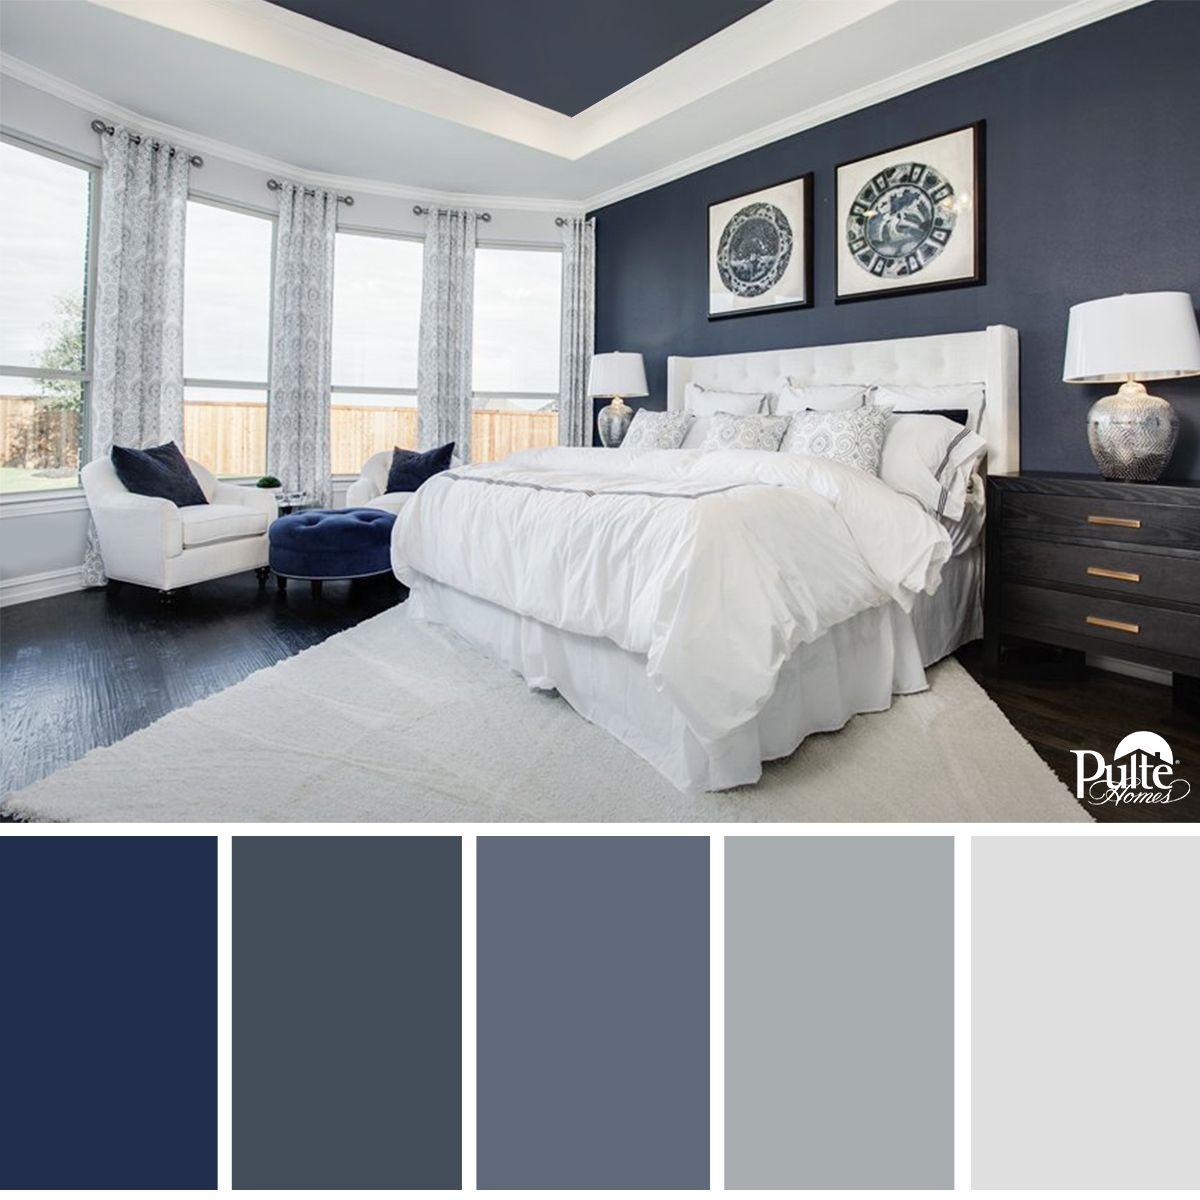 this bedroom design has the right idea. the rich blue color palette